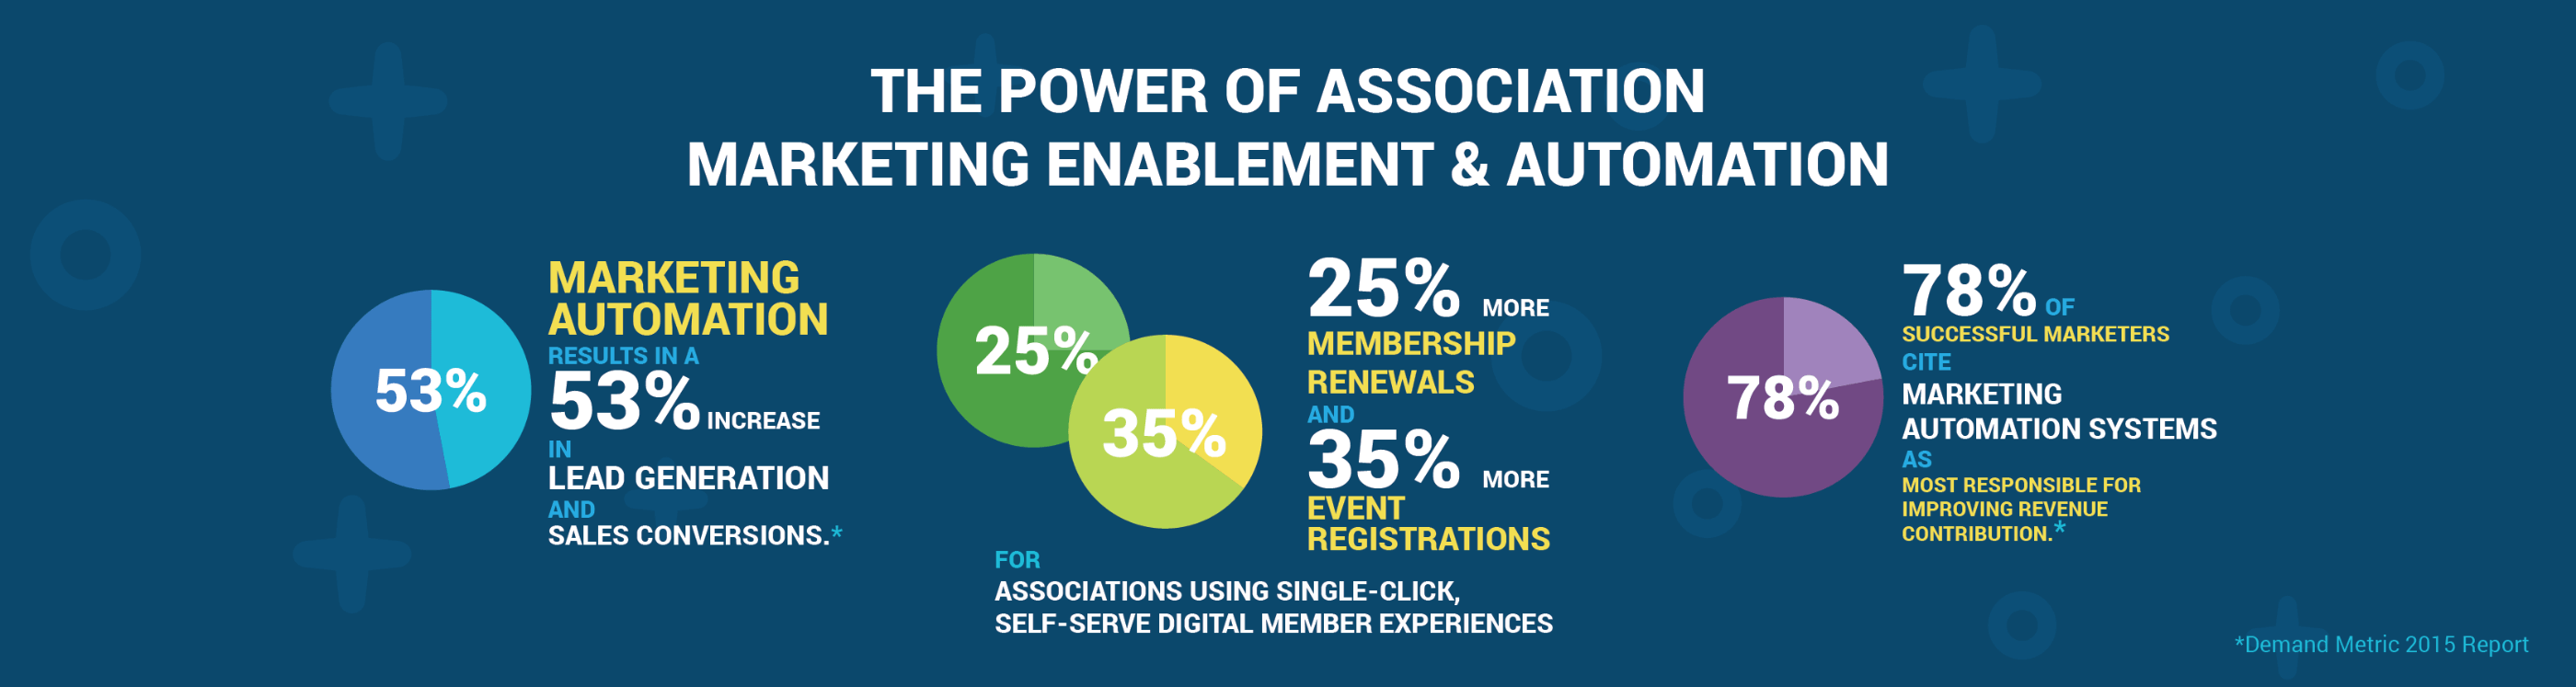 The Power of Marketing Automation for Associations